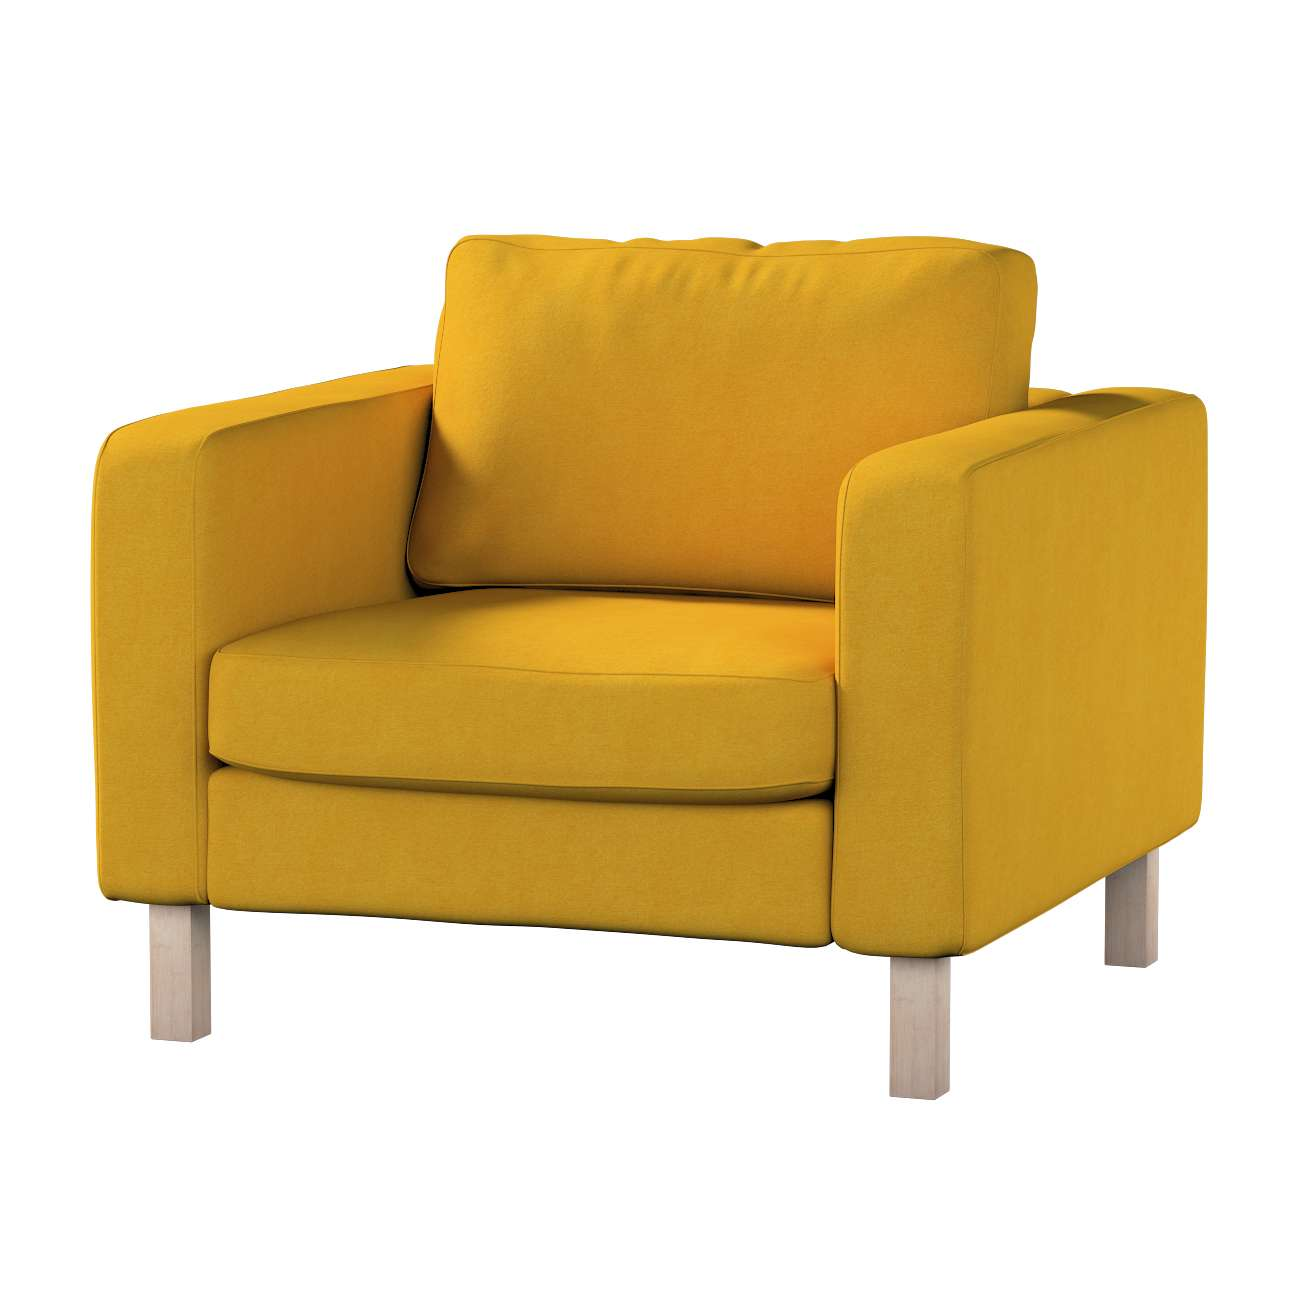 Karlstad armchair cover Karlstad armchair cover in collection Etna, fabric: 705-04